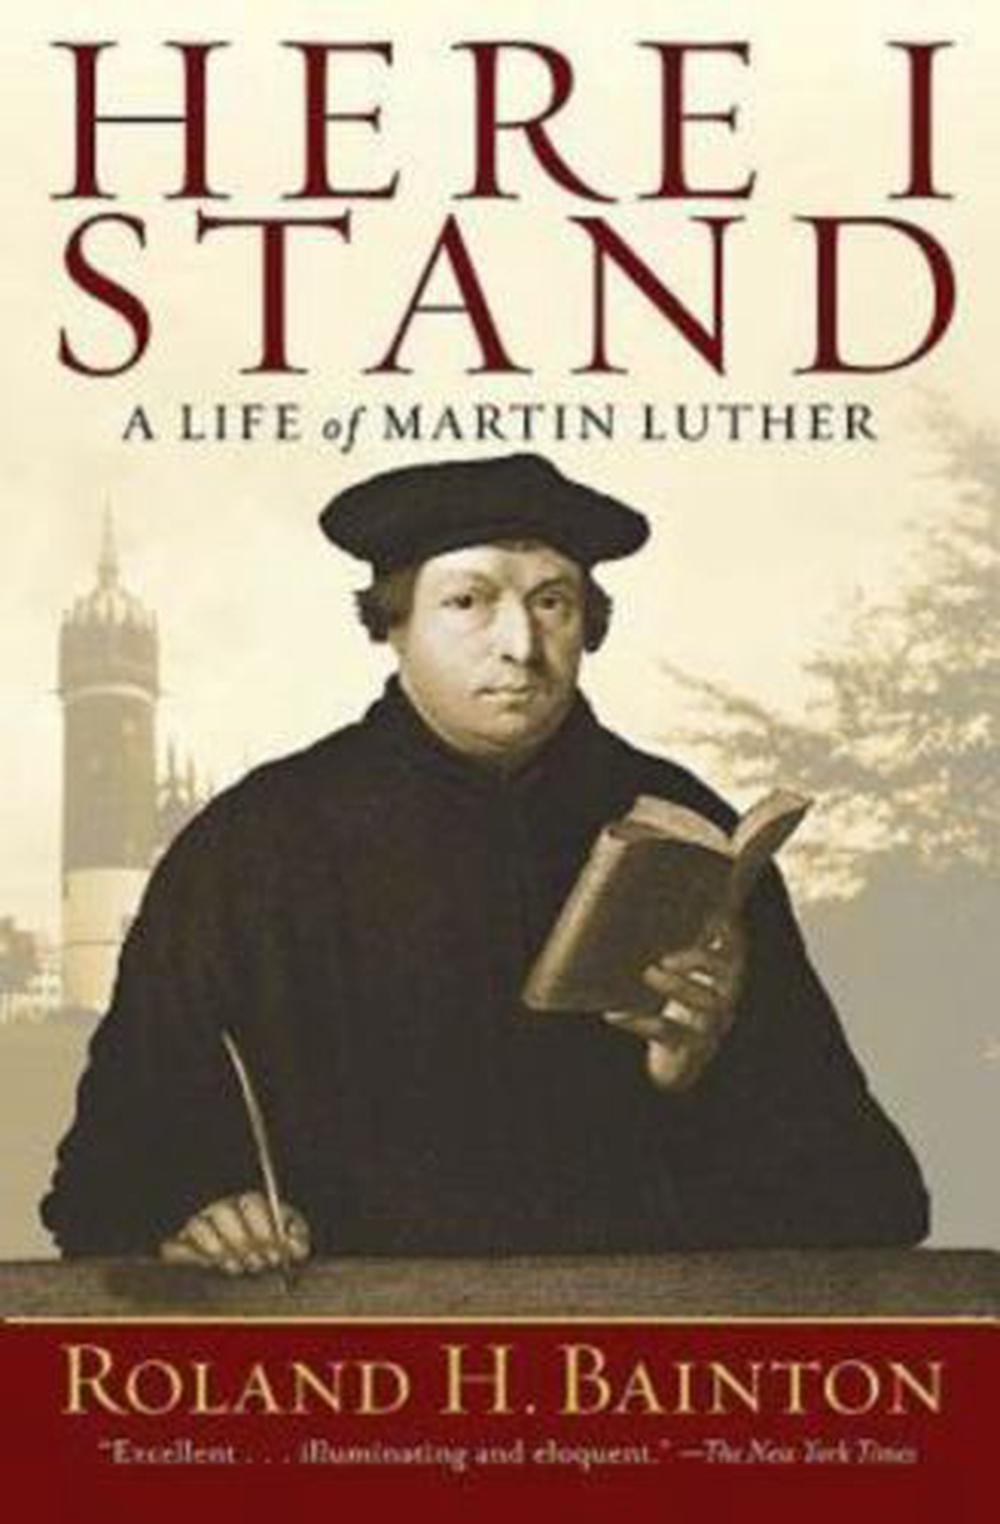 a summary of here i stand a life of martin luther by roland h bainton Here i stand: a life of martin luther [roland h bainton] on amazoncom free shipping on qualifying offers slight tanning to pages.